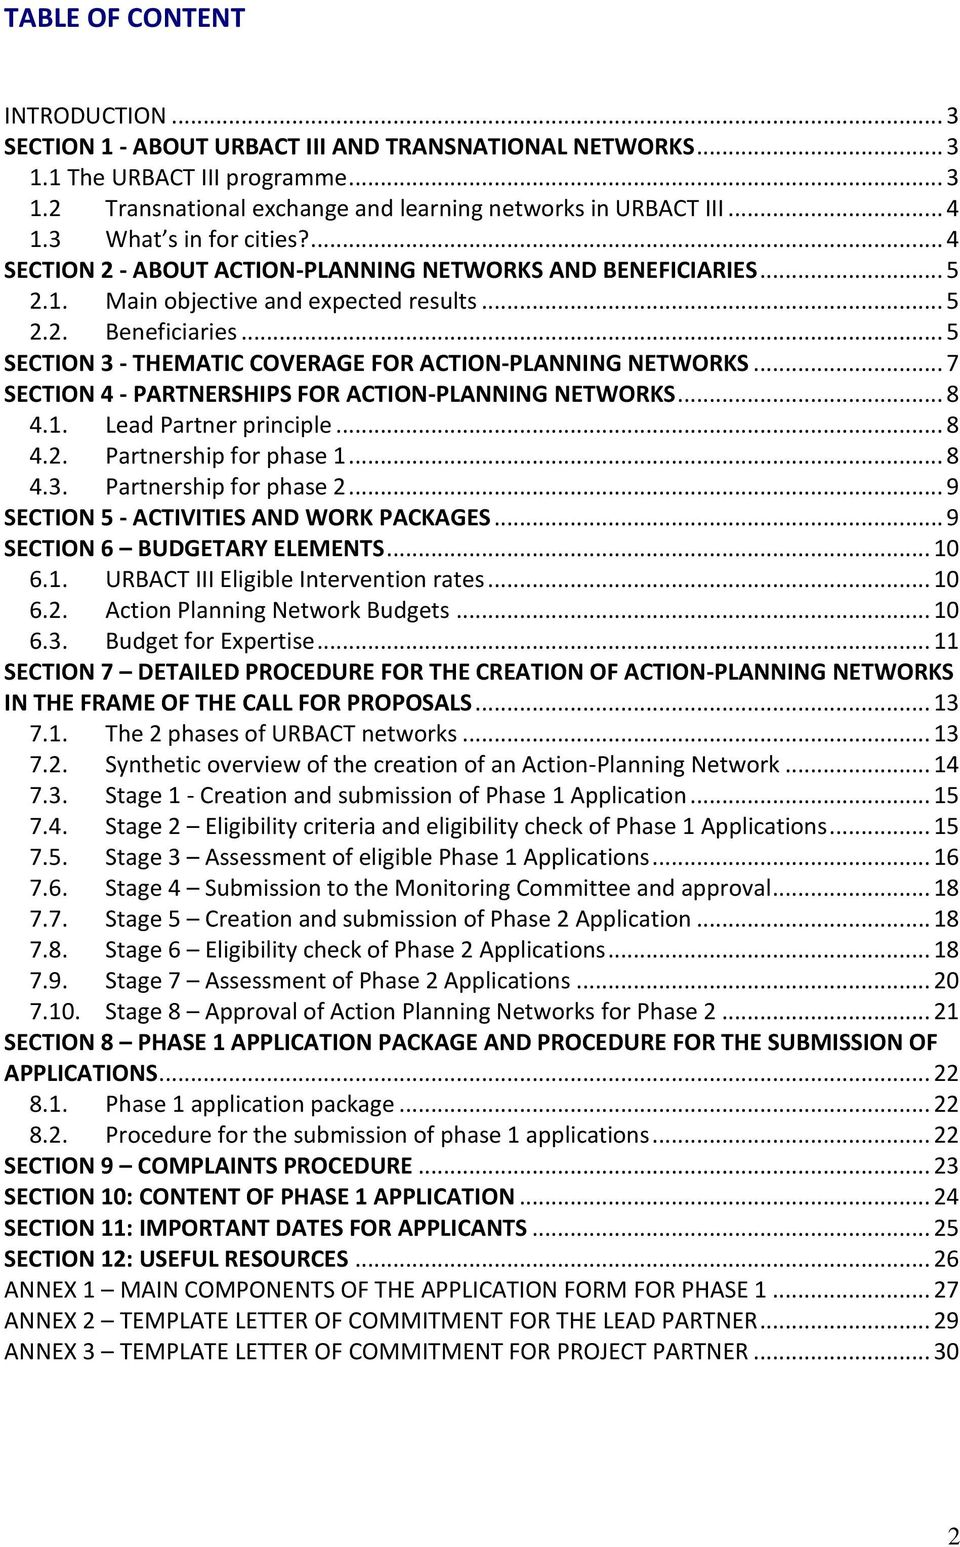 .. 5 SECTION 3 - THEMATIC COVERAGE FOR ACTION-PLANNING NETWORKS... 7 SECTION 4 - PARTNERSHIPS FOR ACTION-PLANNING NETWORKS... 8 4.1. Lead Partner principle... 8 4.2. Partnership for phase 1... 8 4.3. Partnership for phase 2.